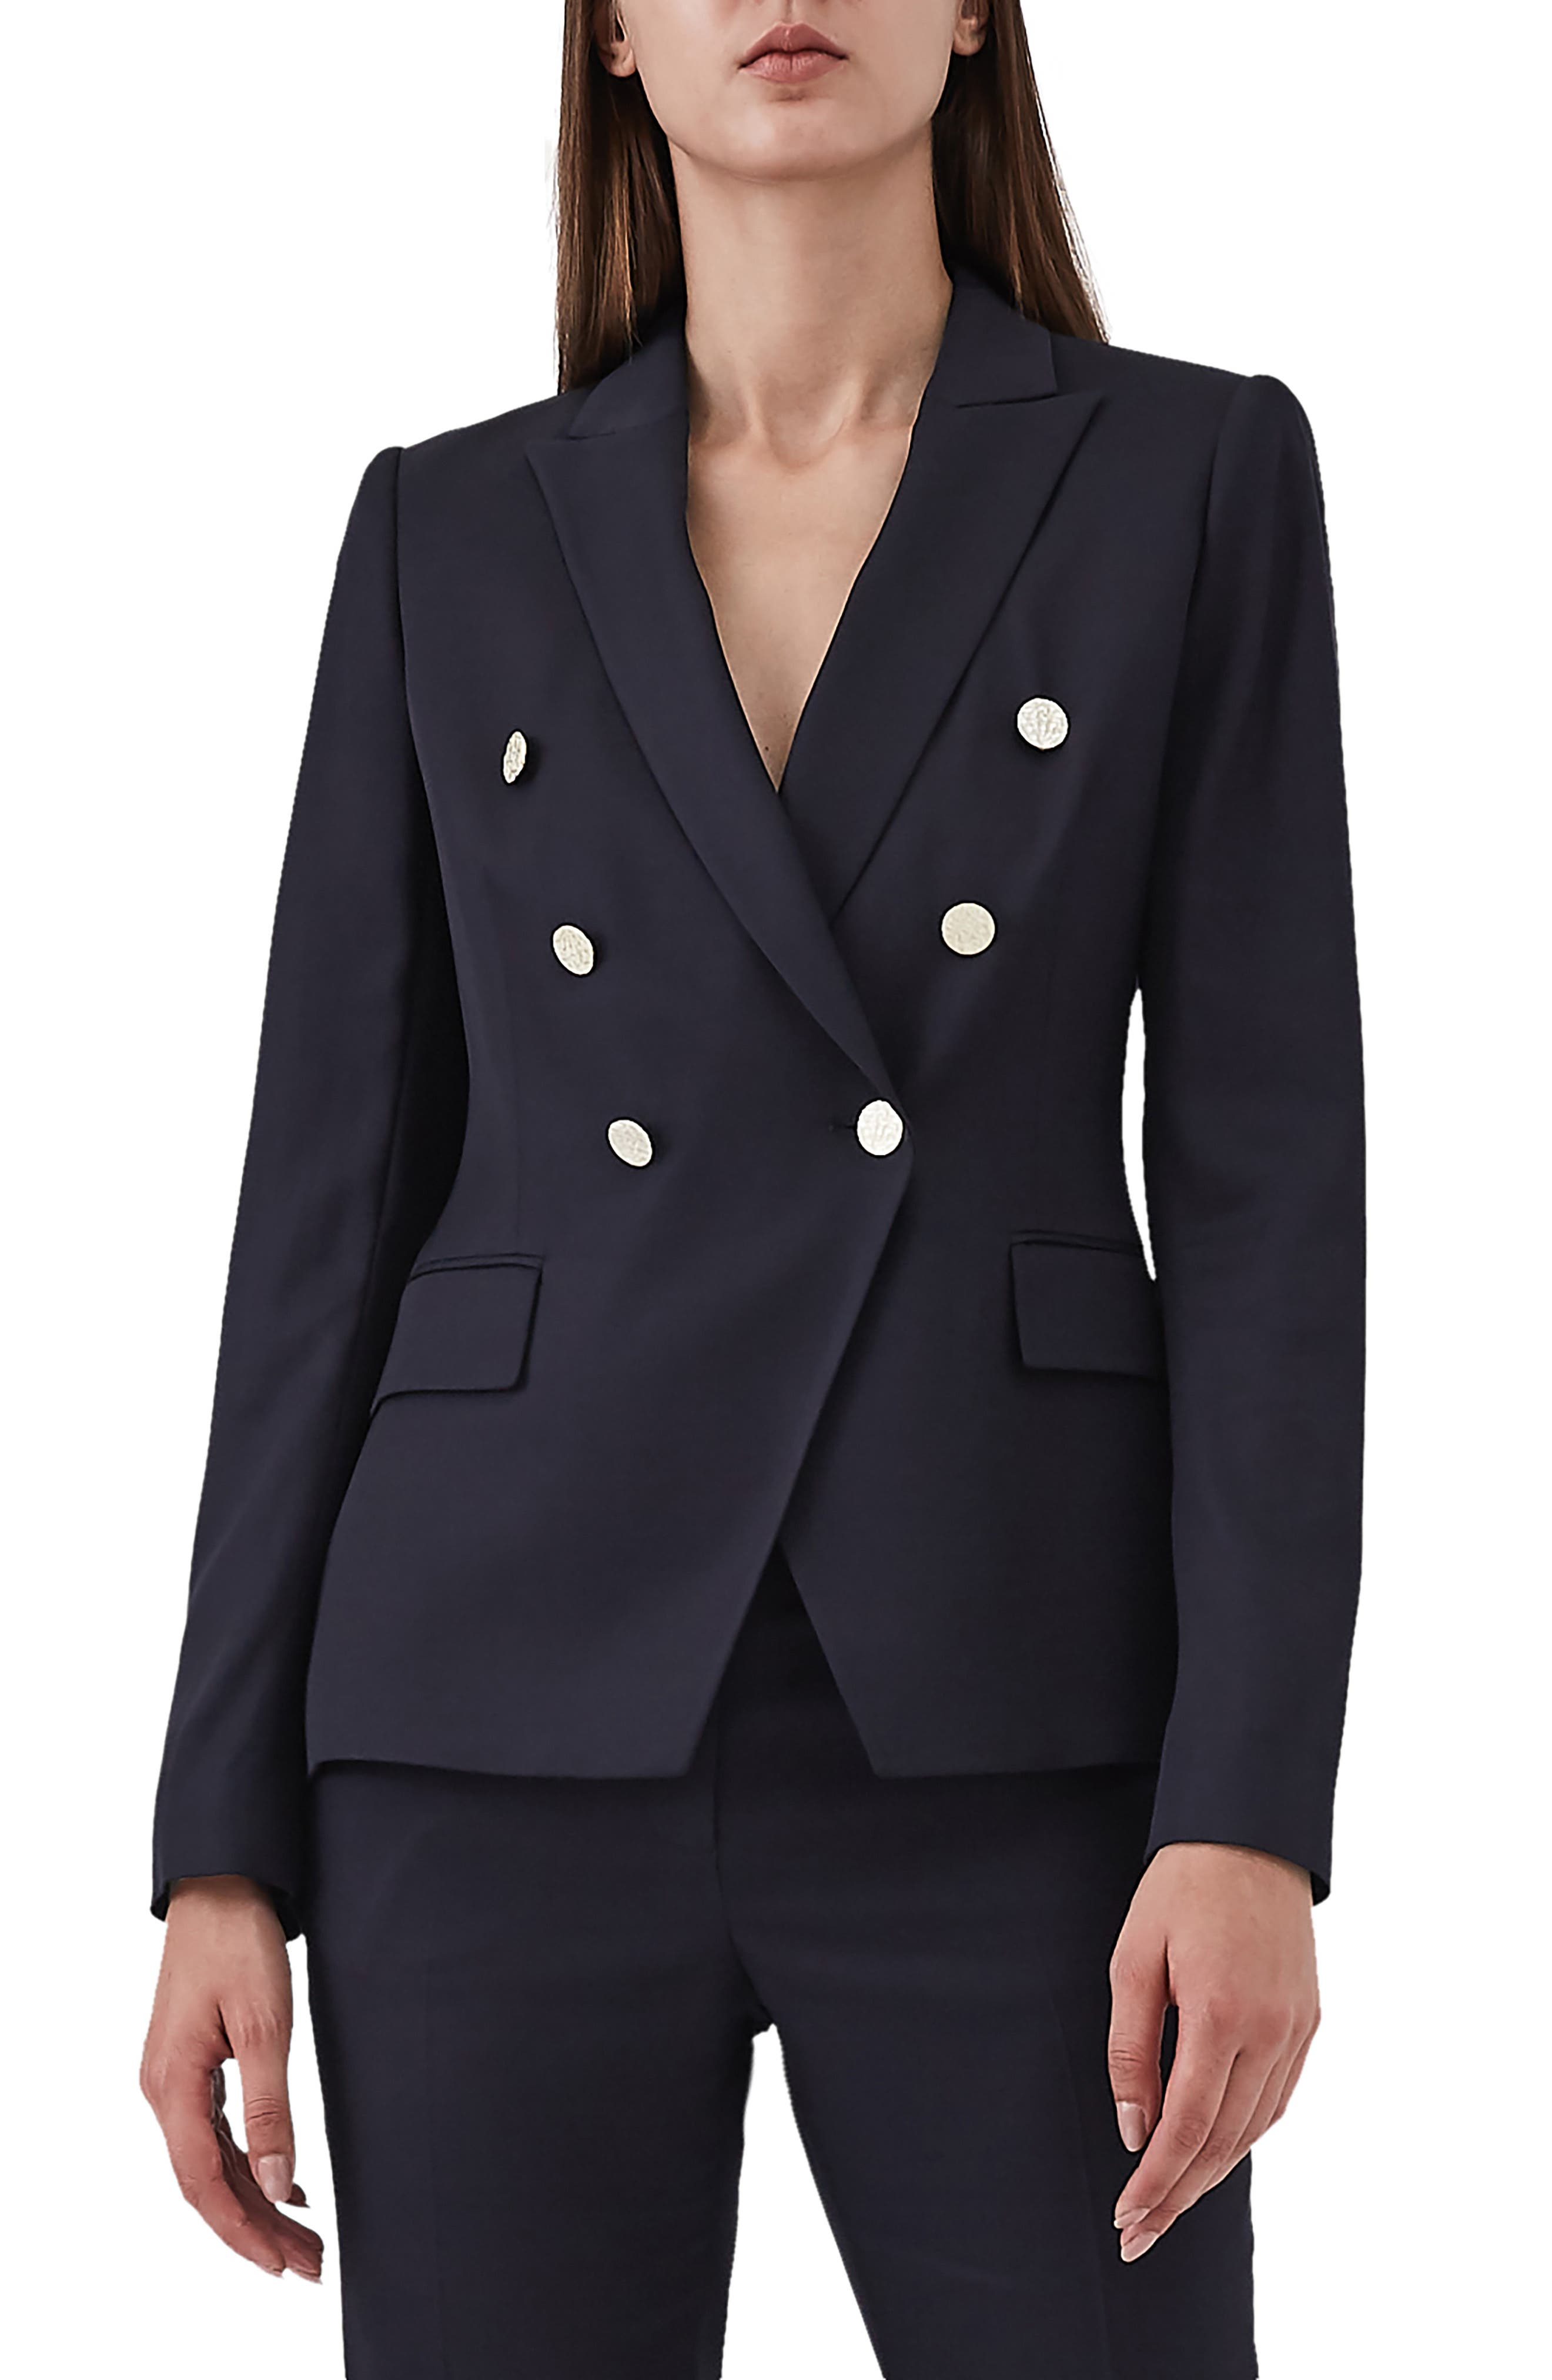 Tally Double Breasted Wool Blend Jacket,                         Main,                         color, BLUE